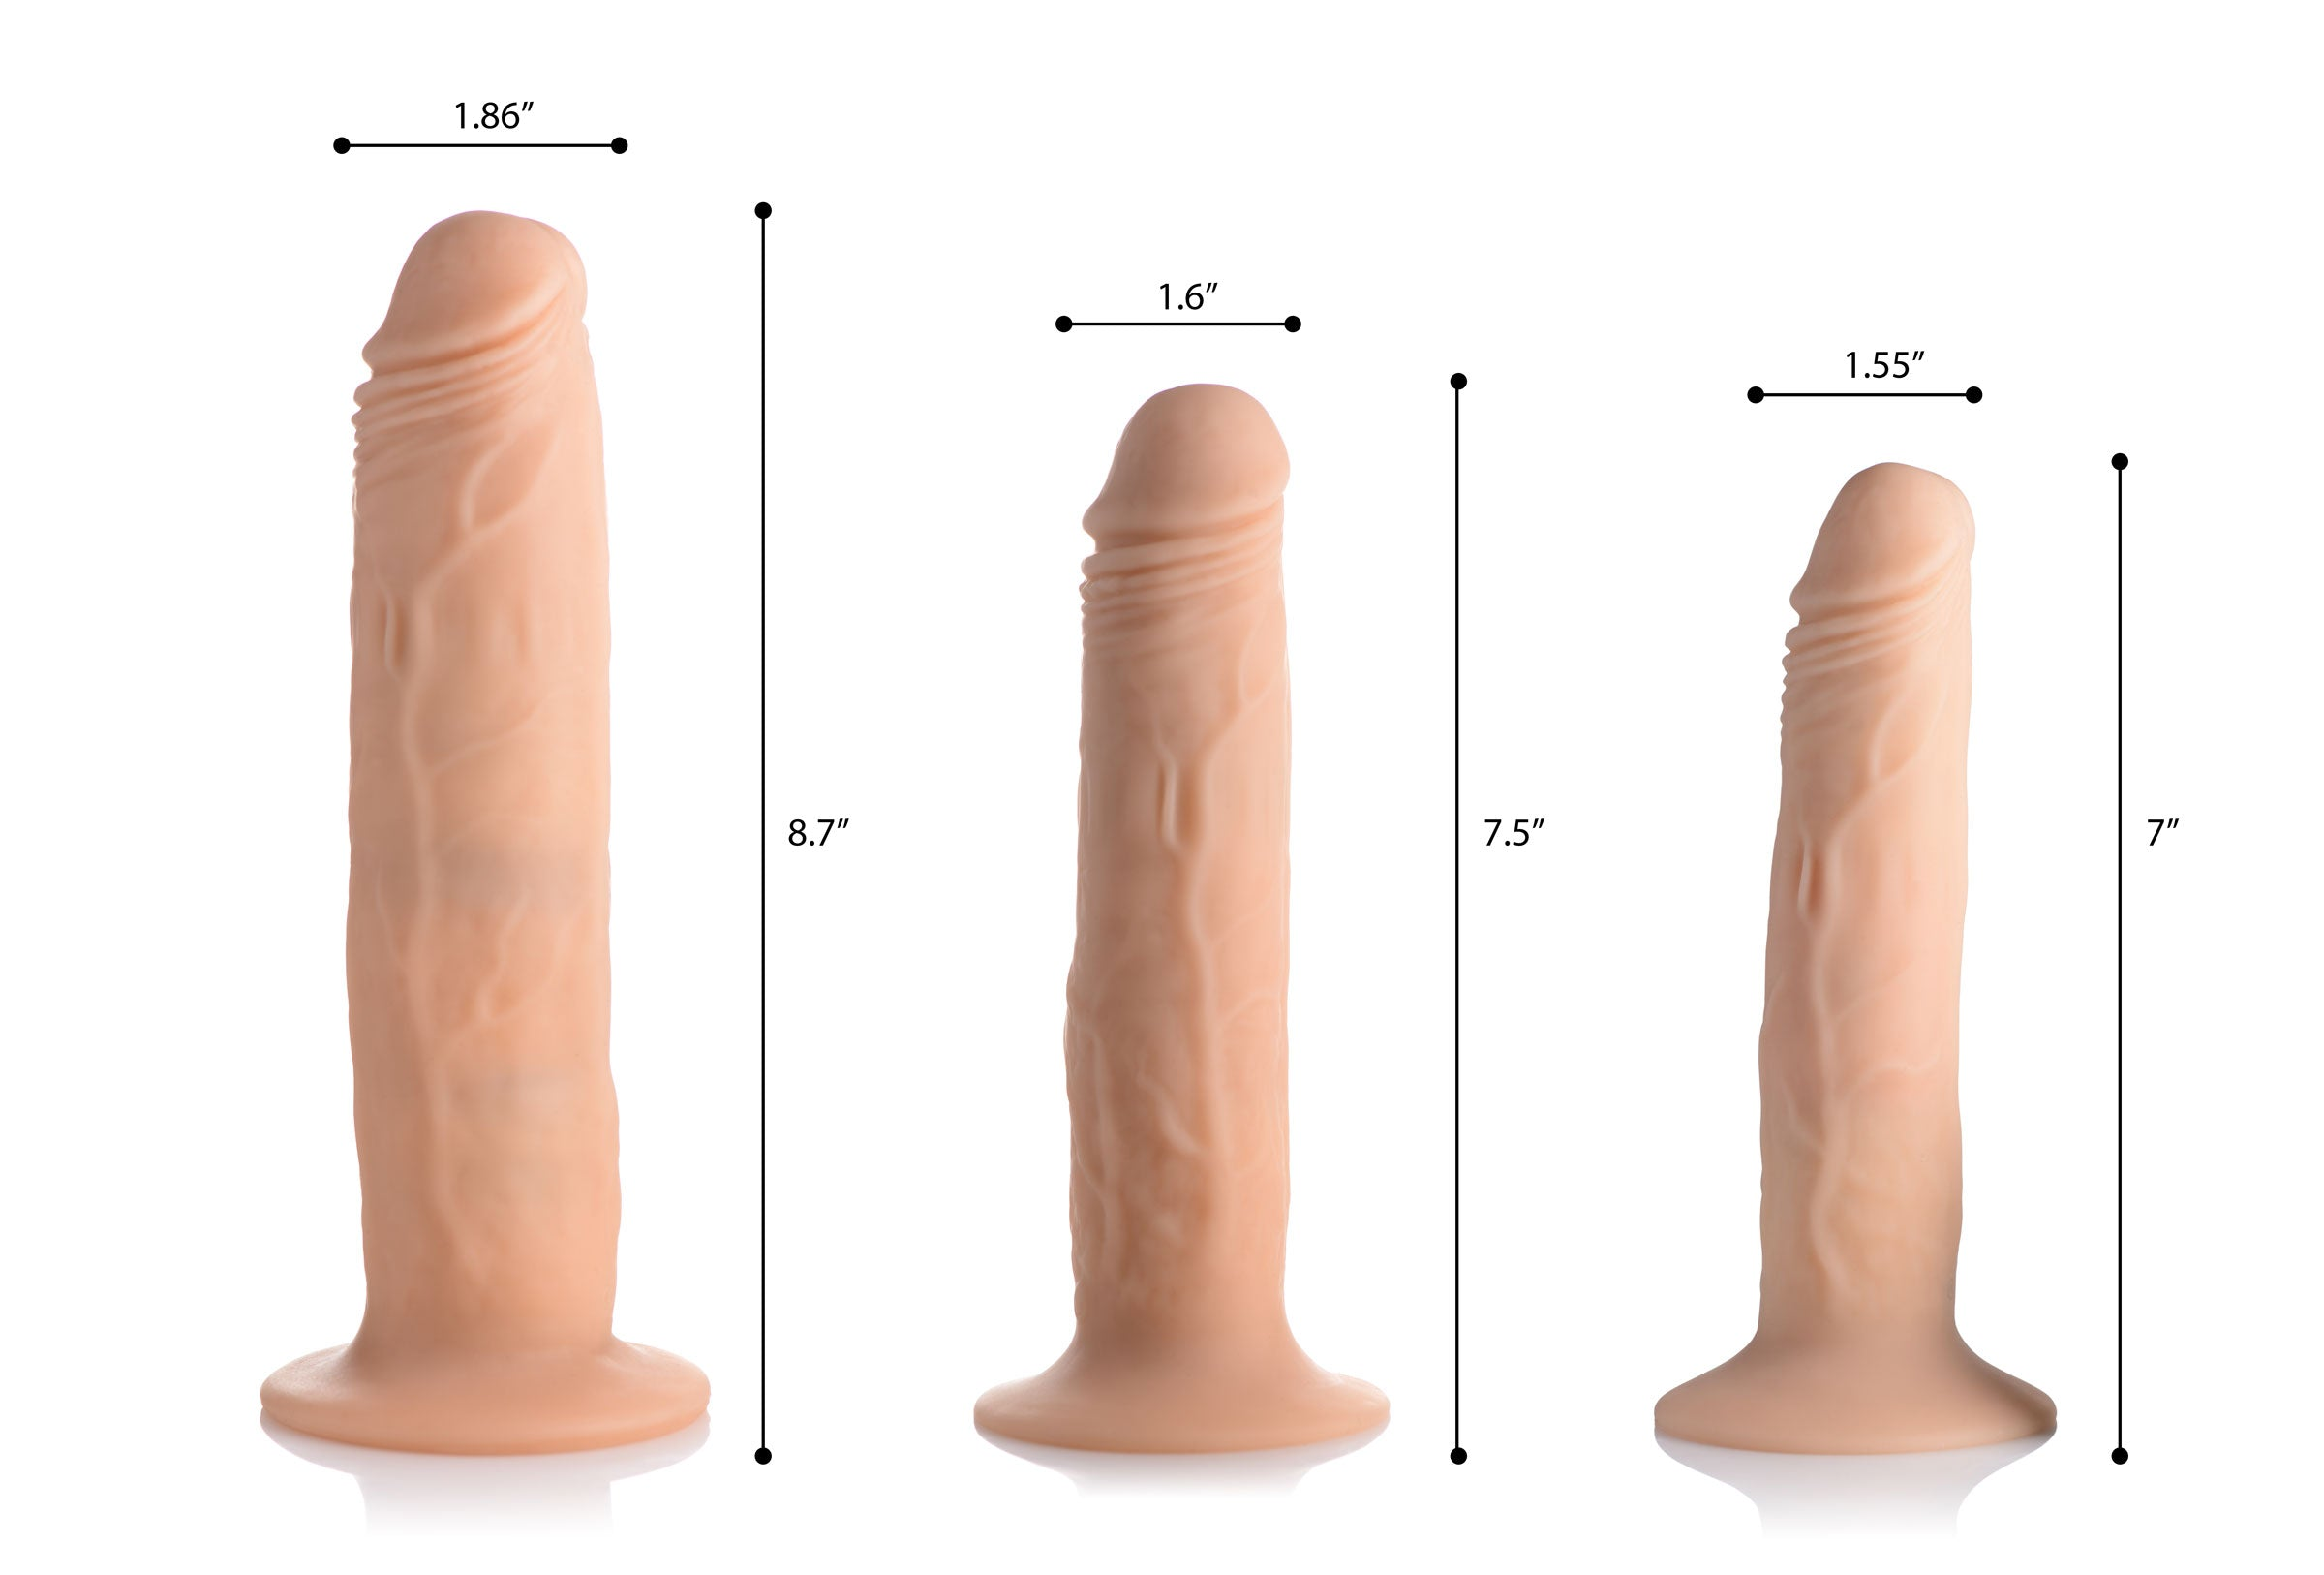 Kinetic Thumping 7x Remote Control Dildo - Large